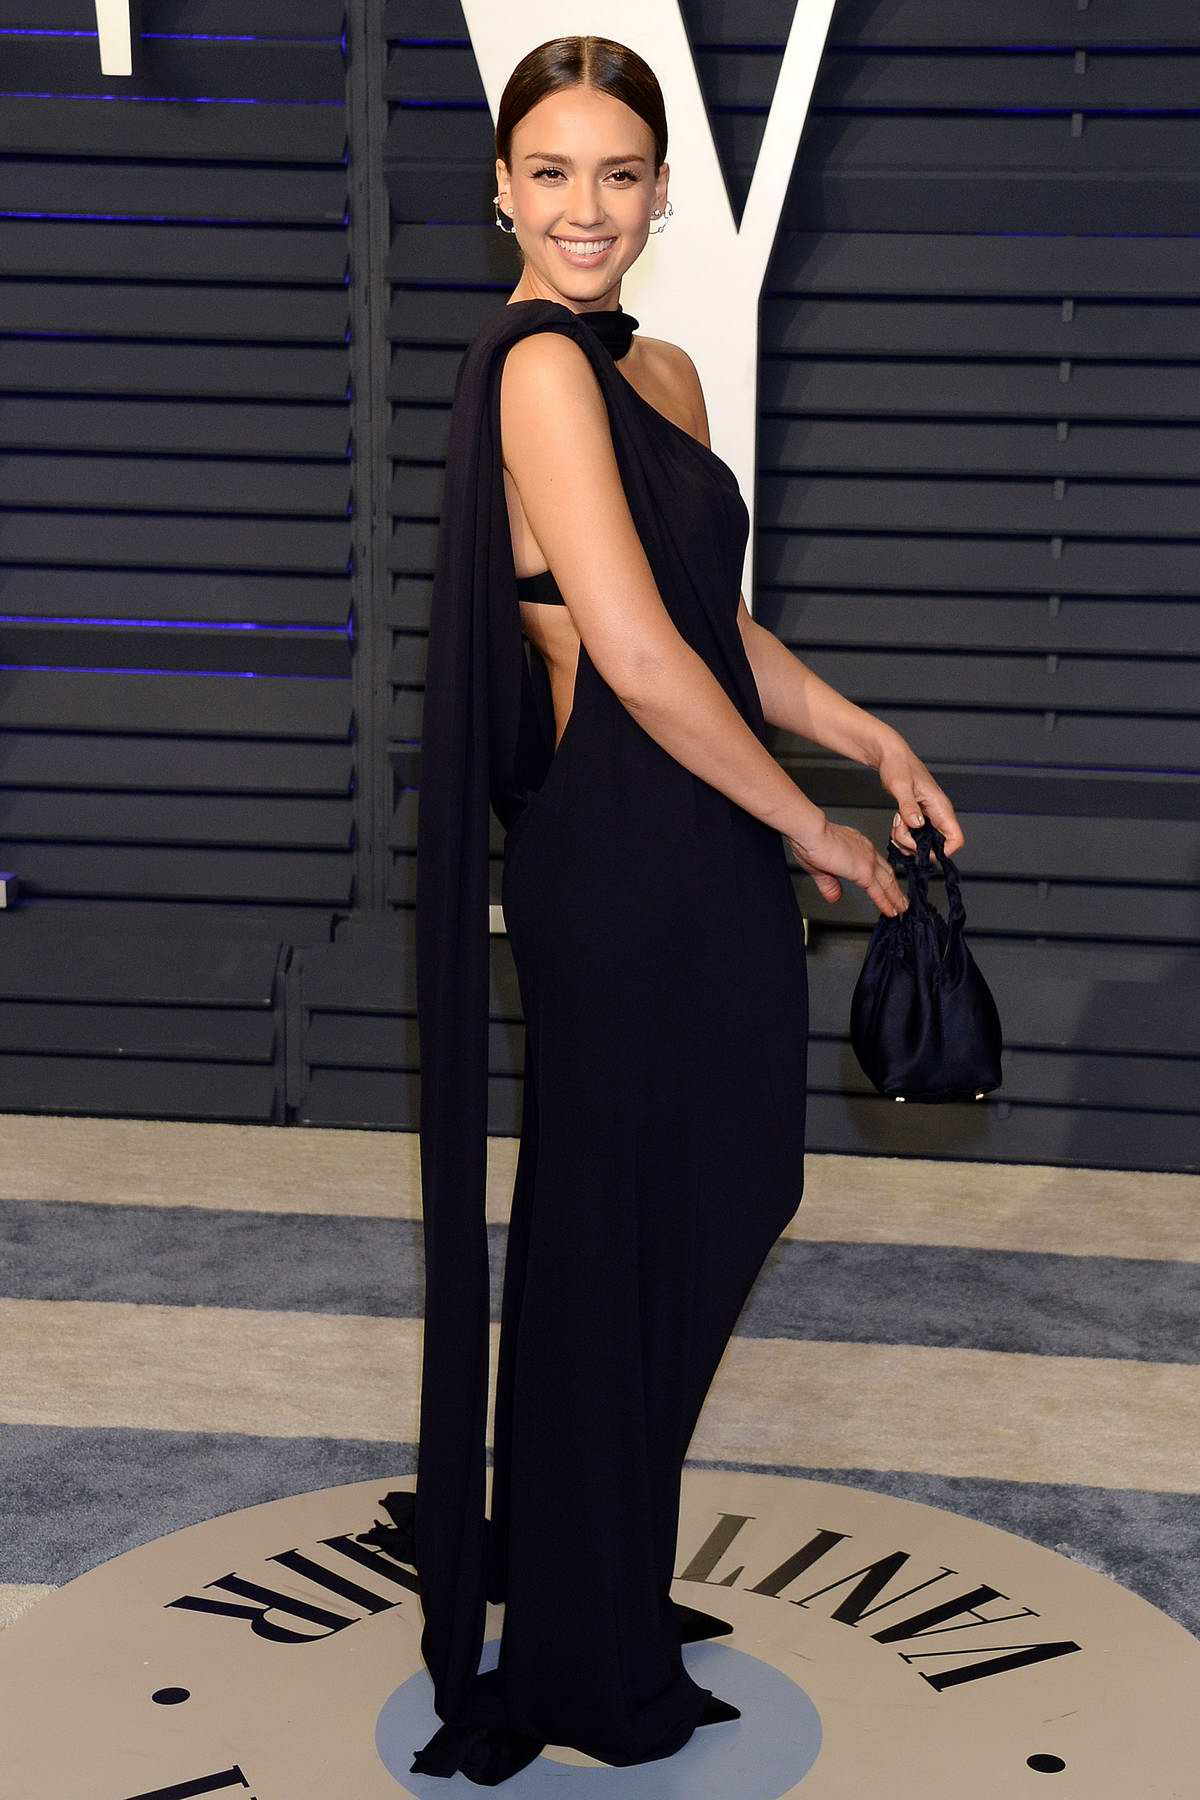 Jessica Alba attends the Vanity Fair Oscar Party at Wallis Annenberg Center for the Performing Arts in Beverly Hills, California